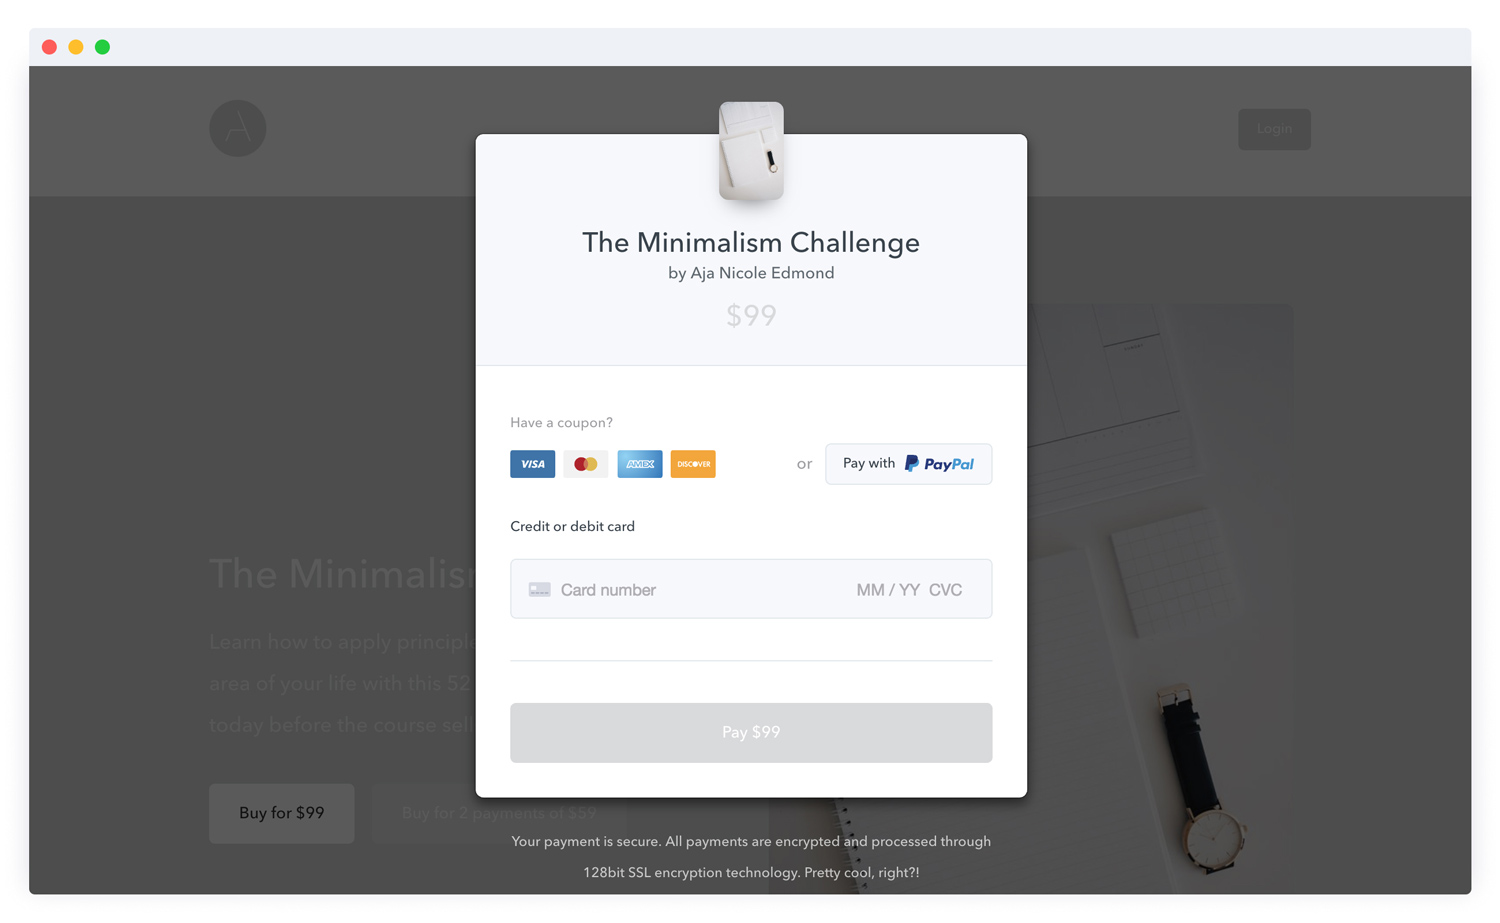 A SquareSpace Alternative Built for Digital Products